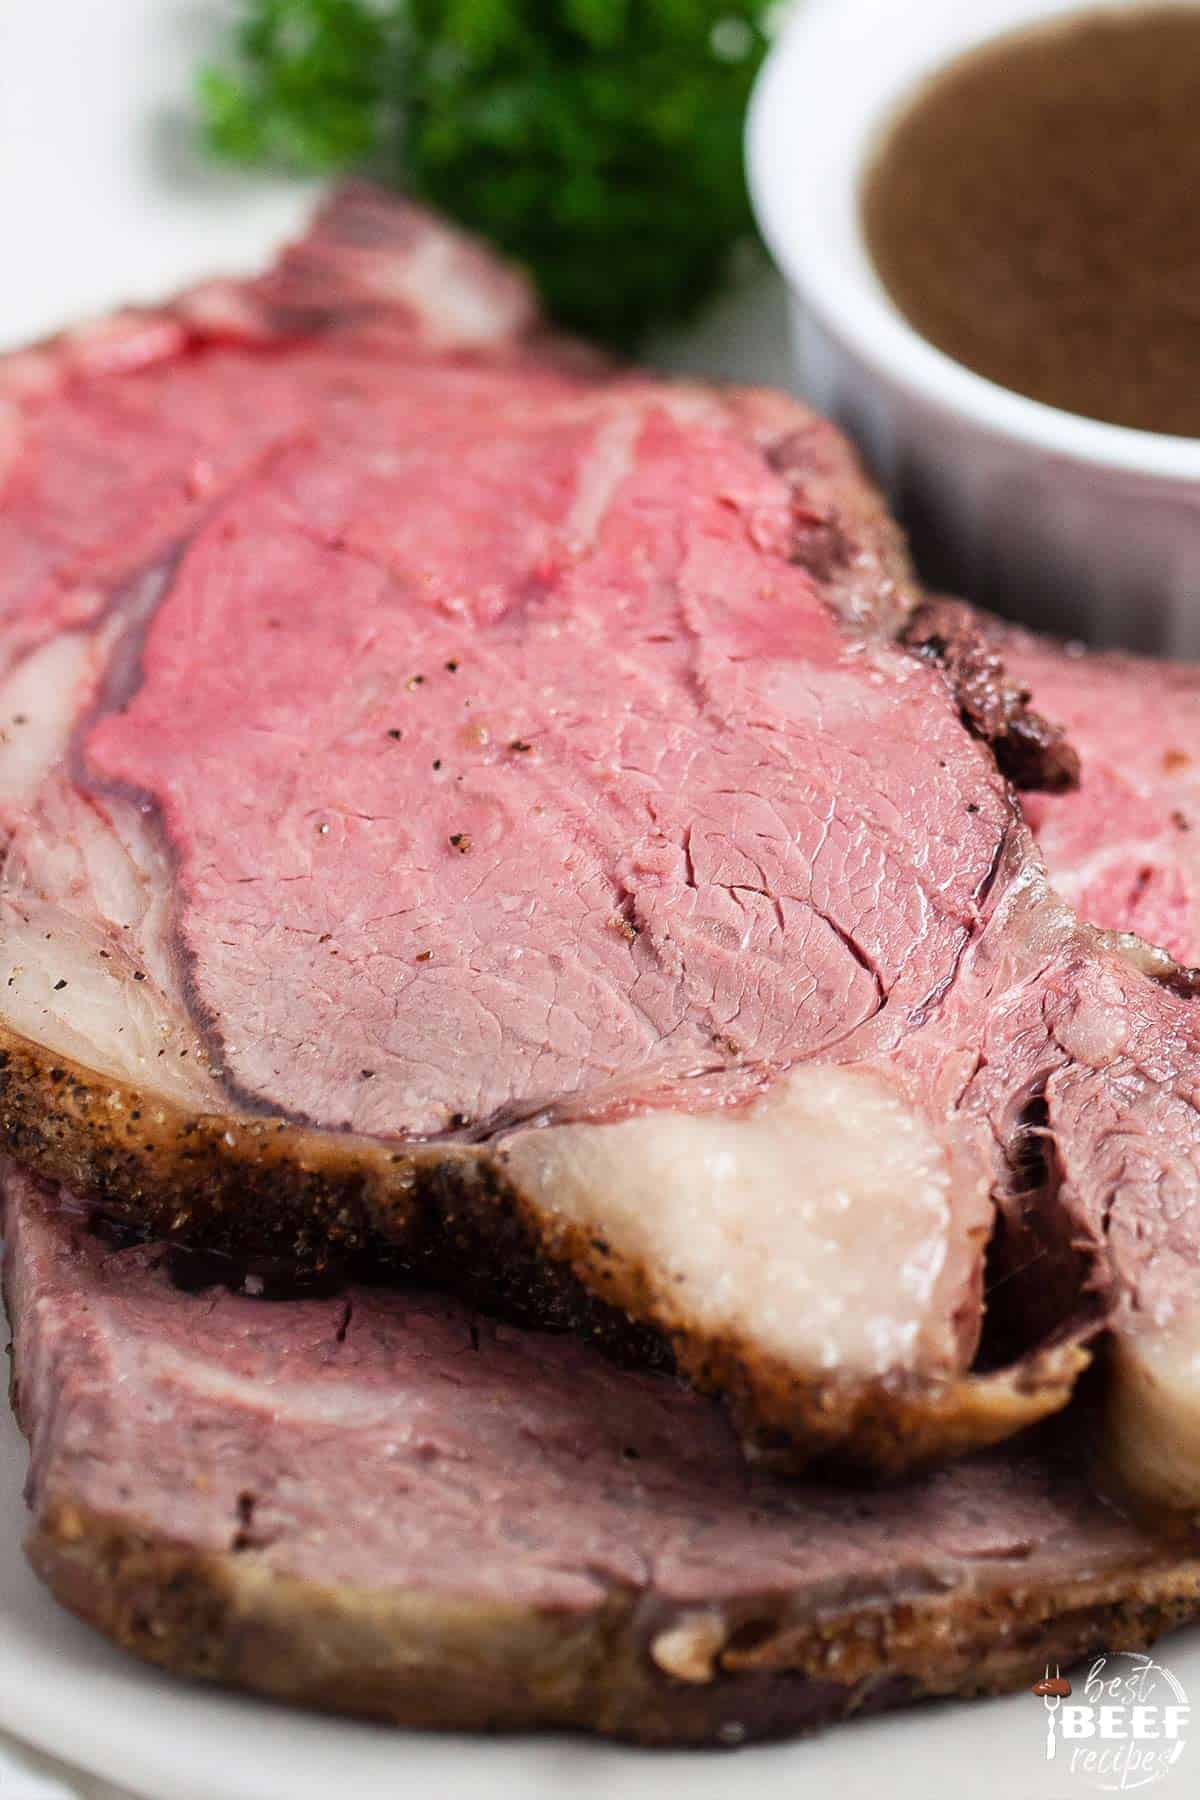 Close up of two slices of prime rib on a white plate